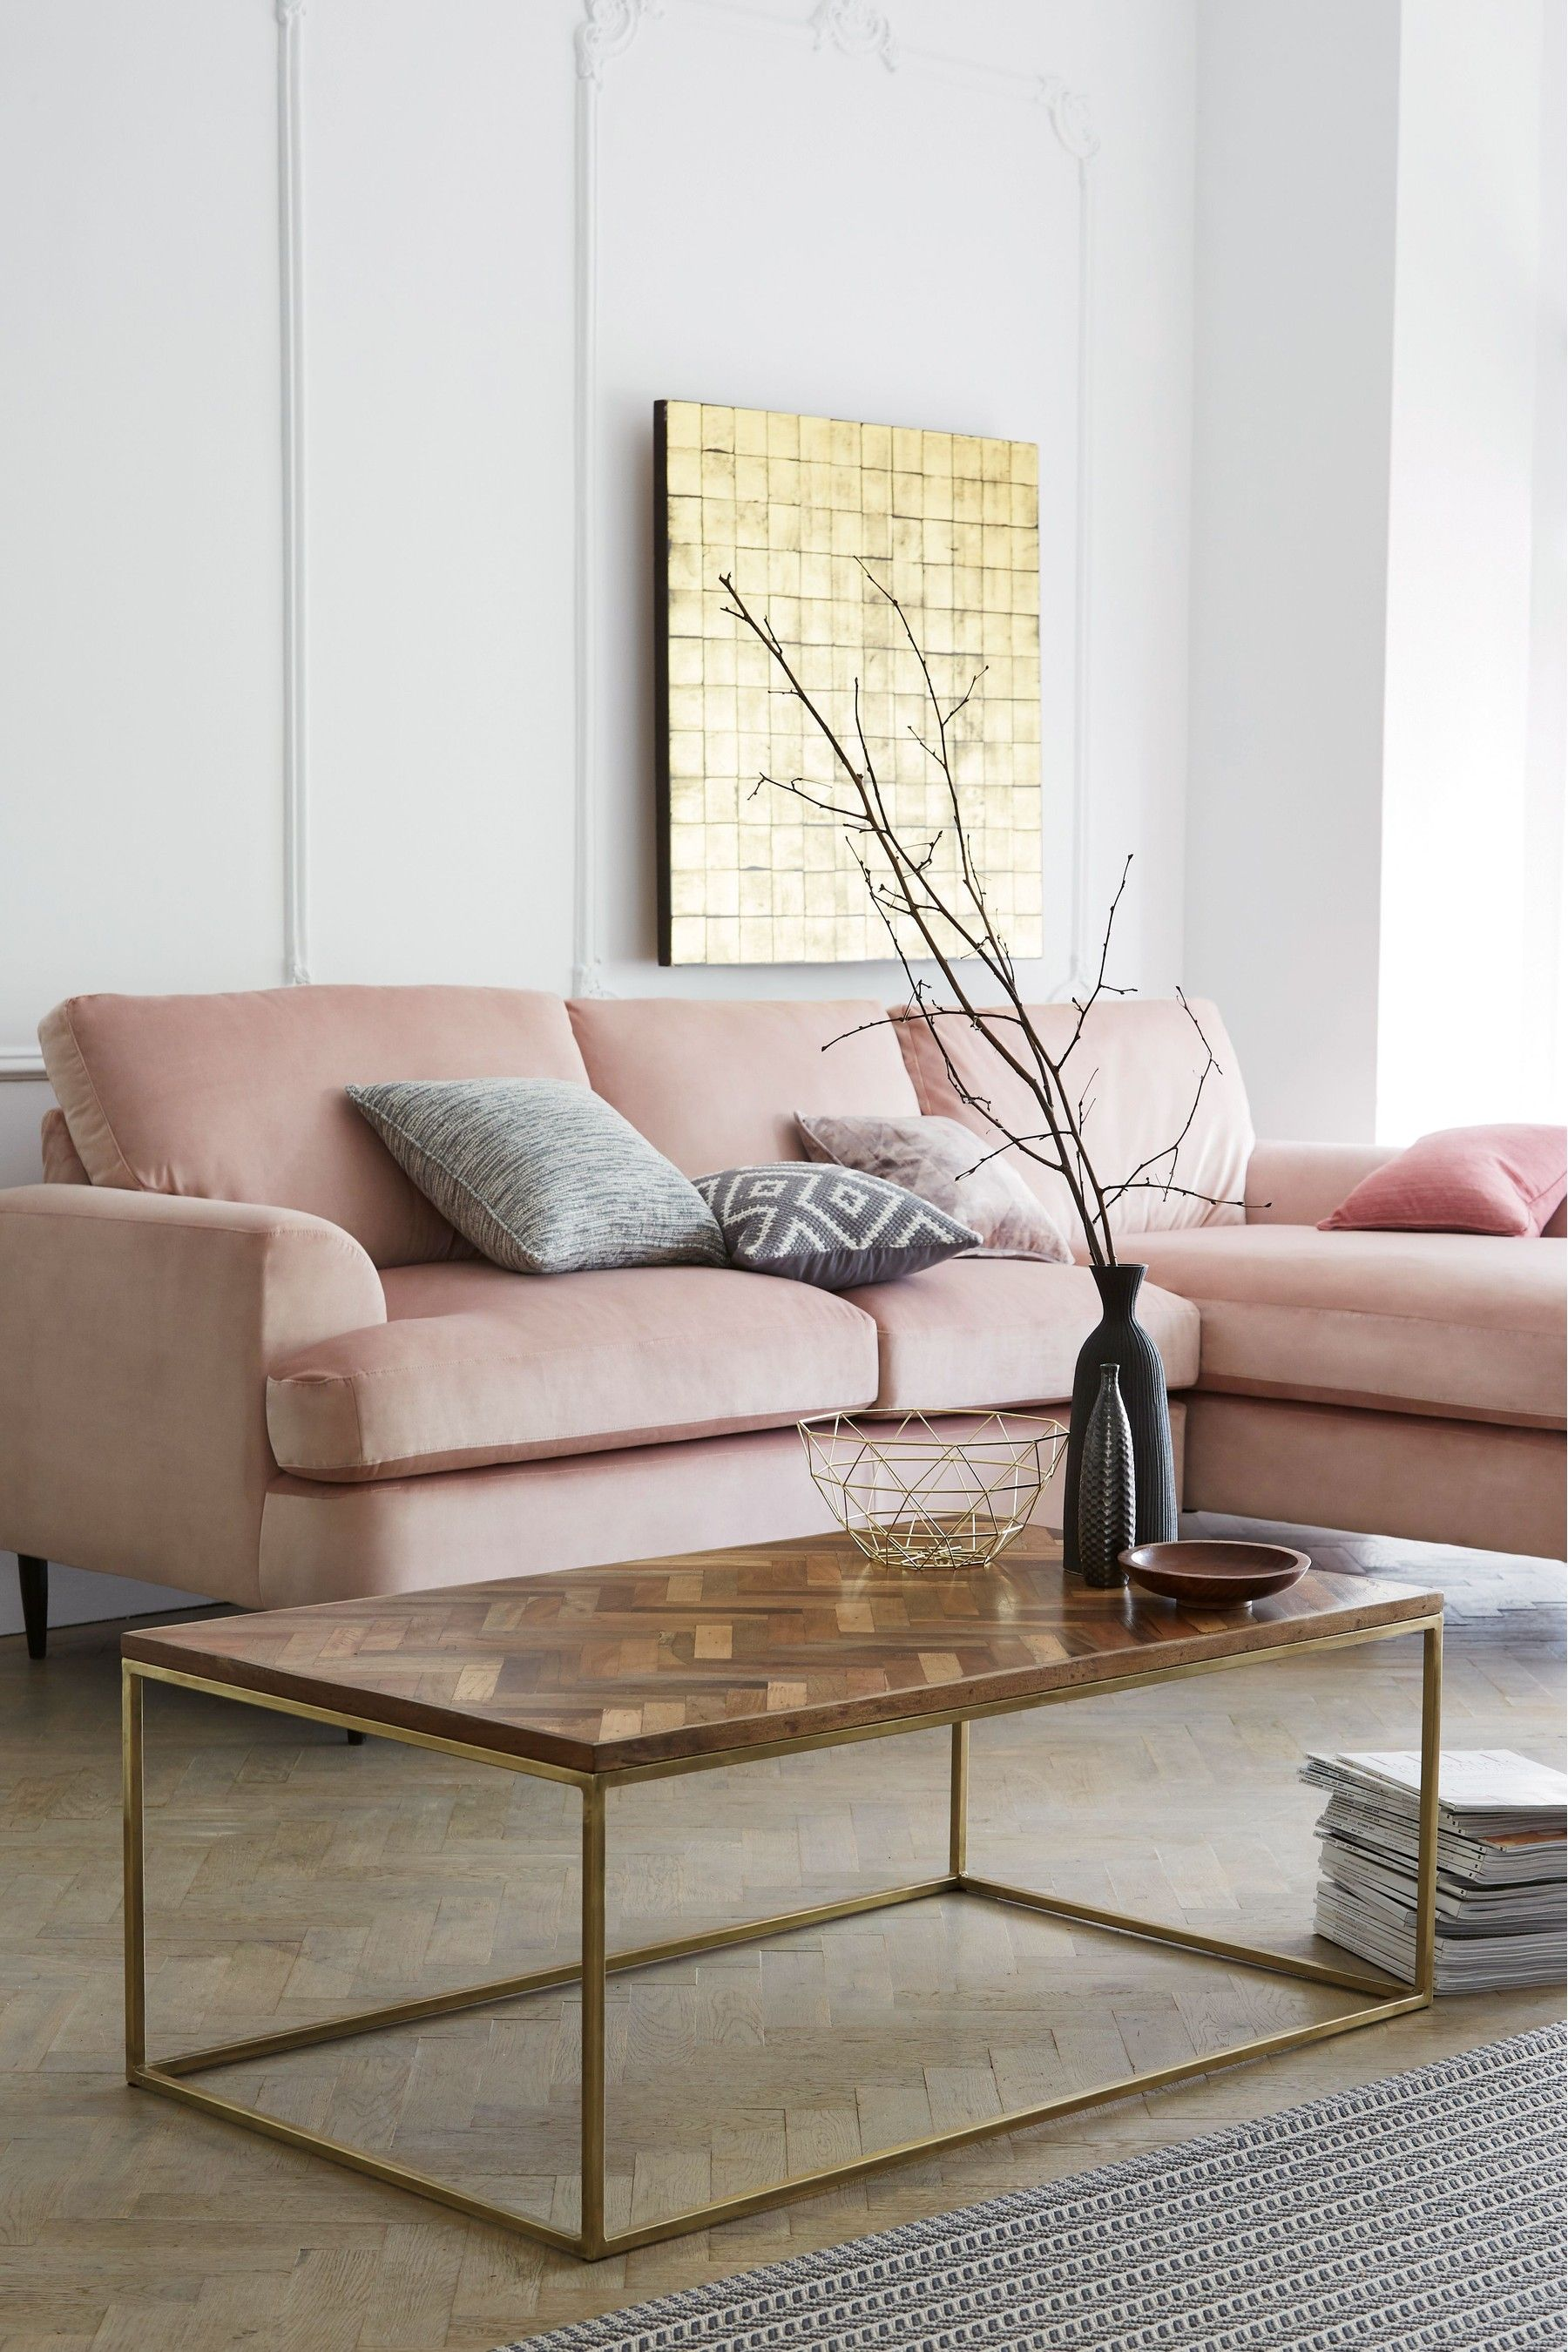 Nikita Coffee Table By Design Décor in 2020 Coffee table